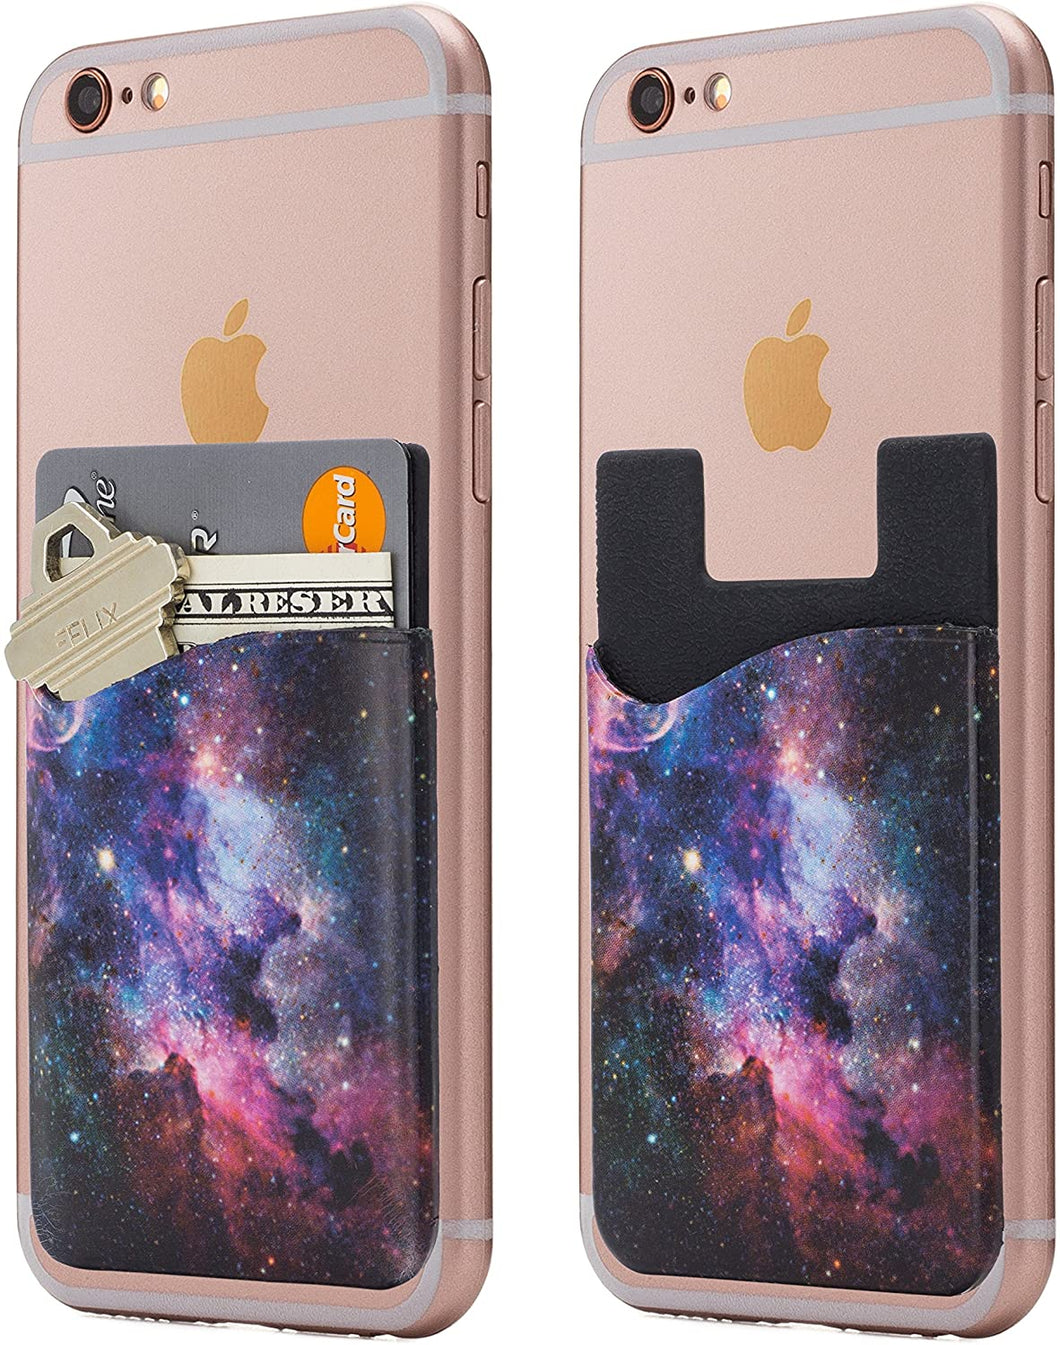 (Two) Galaxy cell phone stick on wallet card holder phone pocket for iPhone, Android and all smartphones.